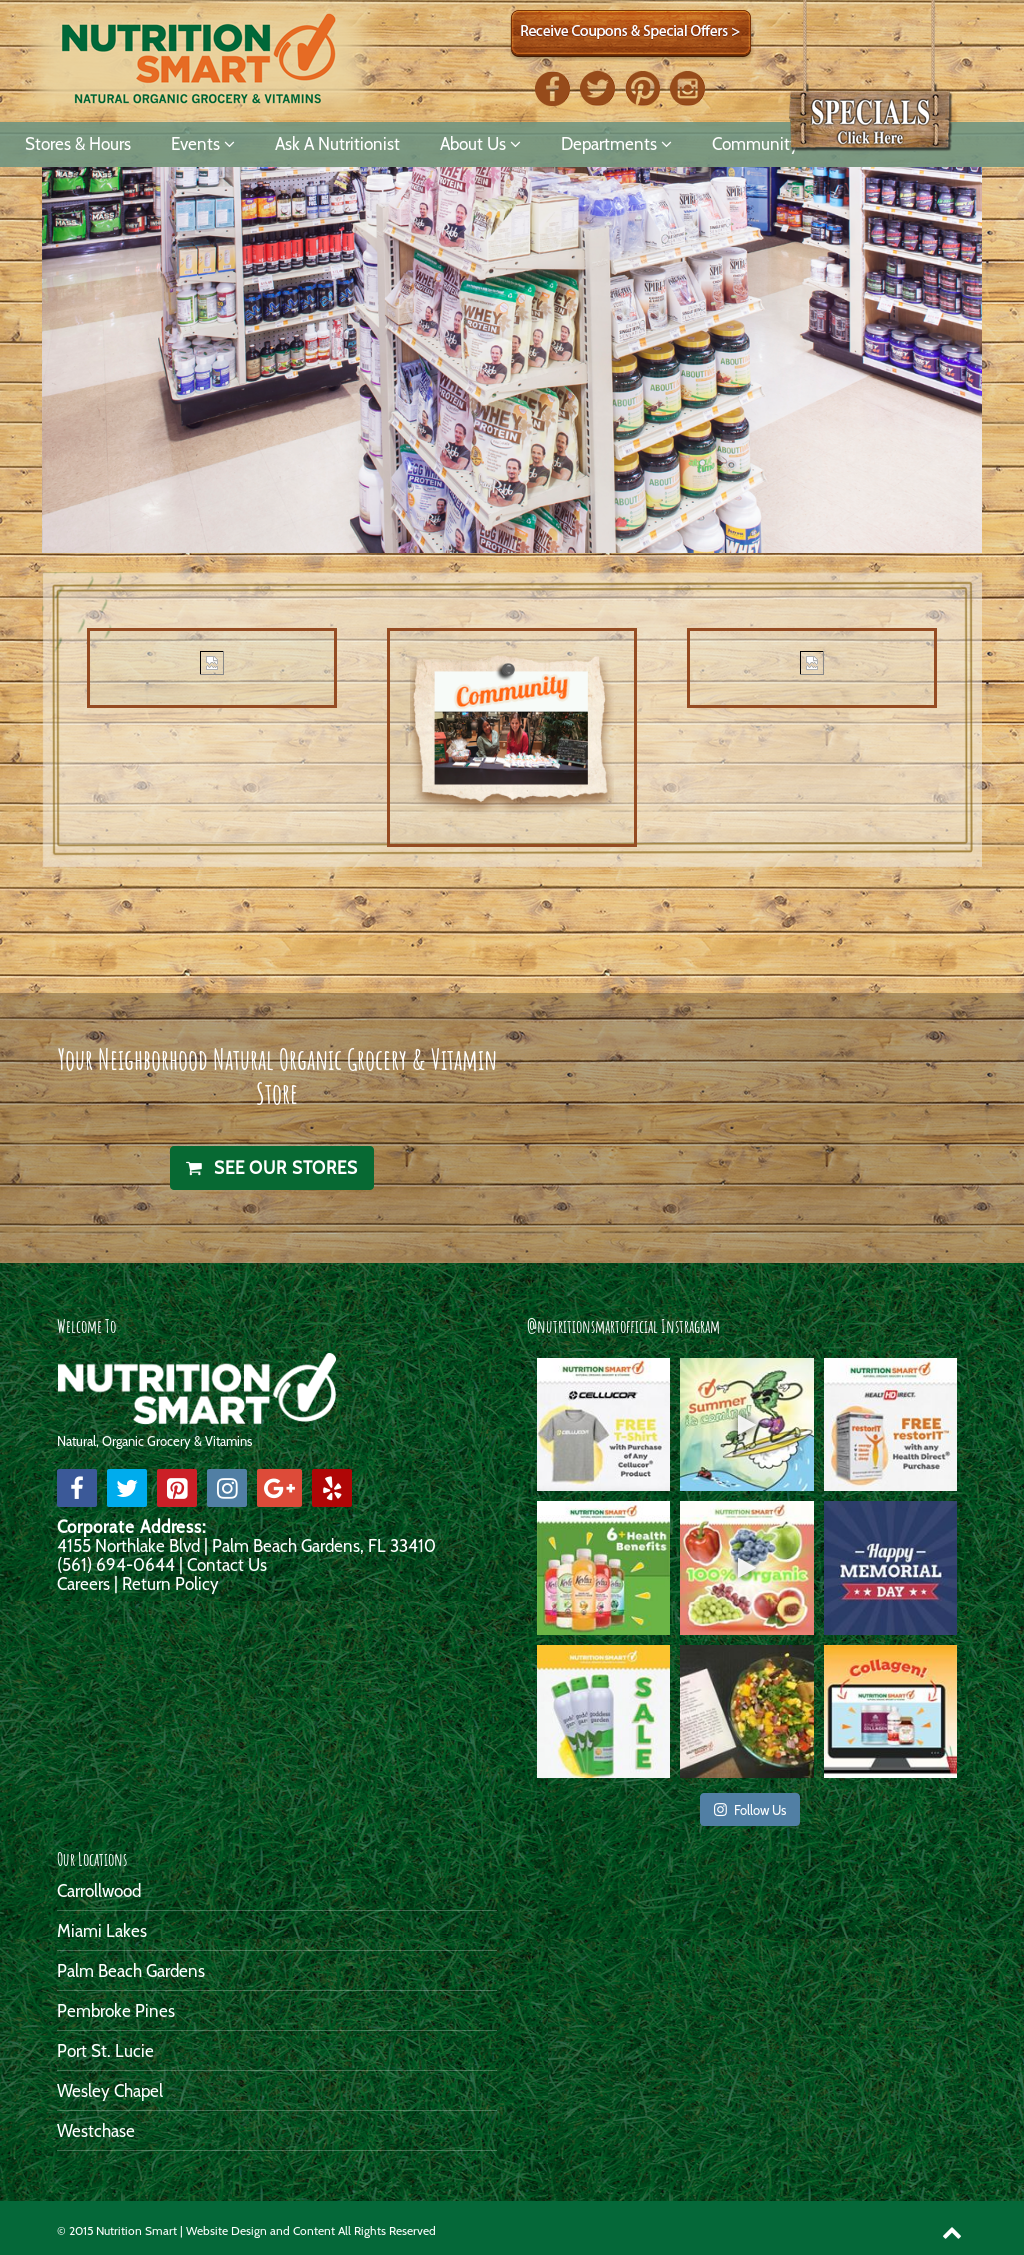 Nutrition S\'Mart Competitors, Revenue and Employees - Owler Company ...